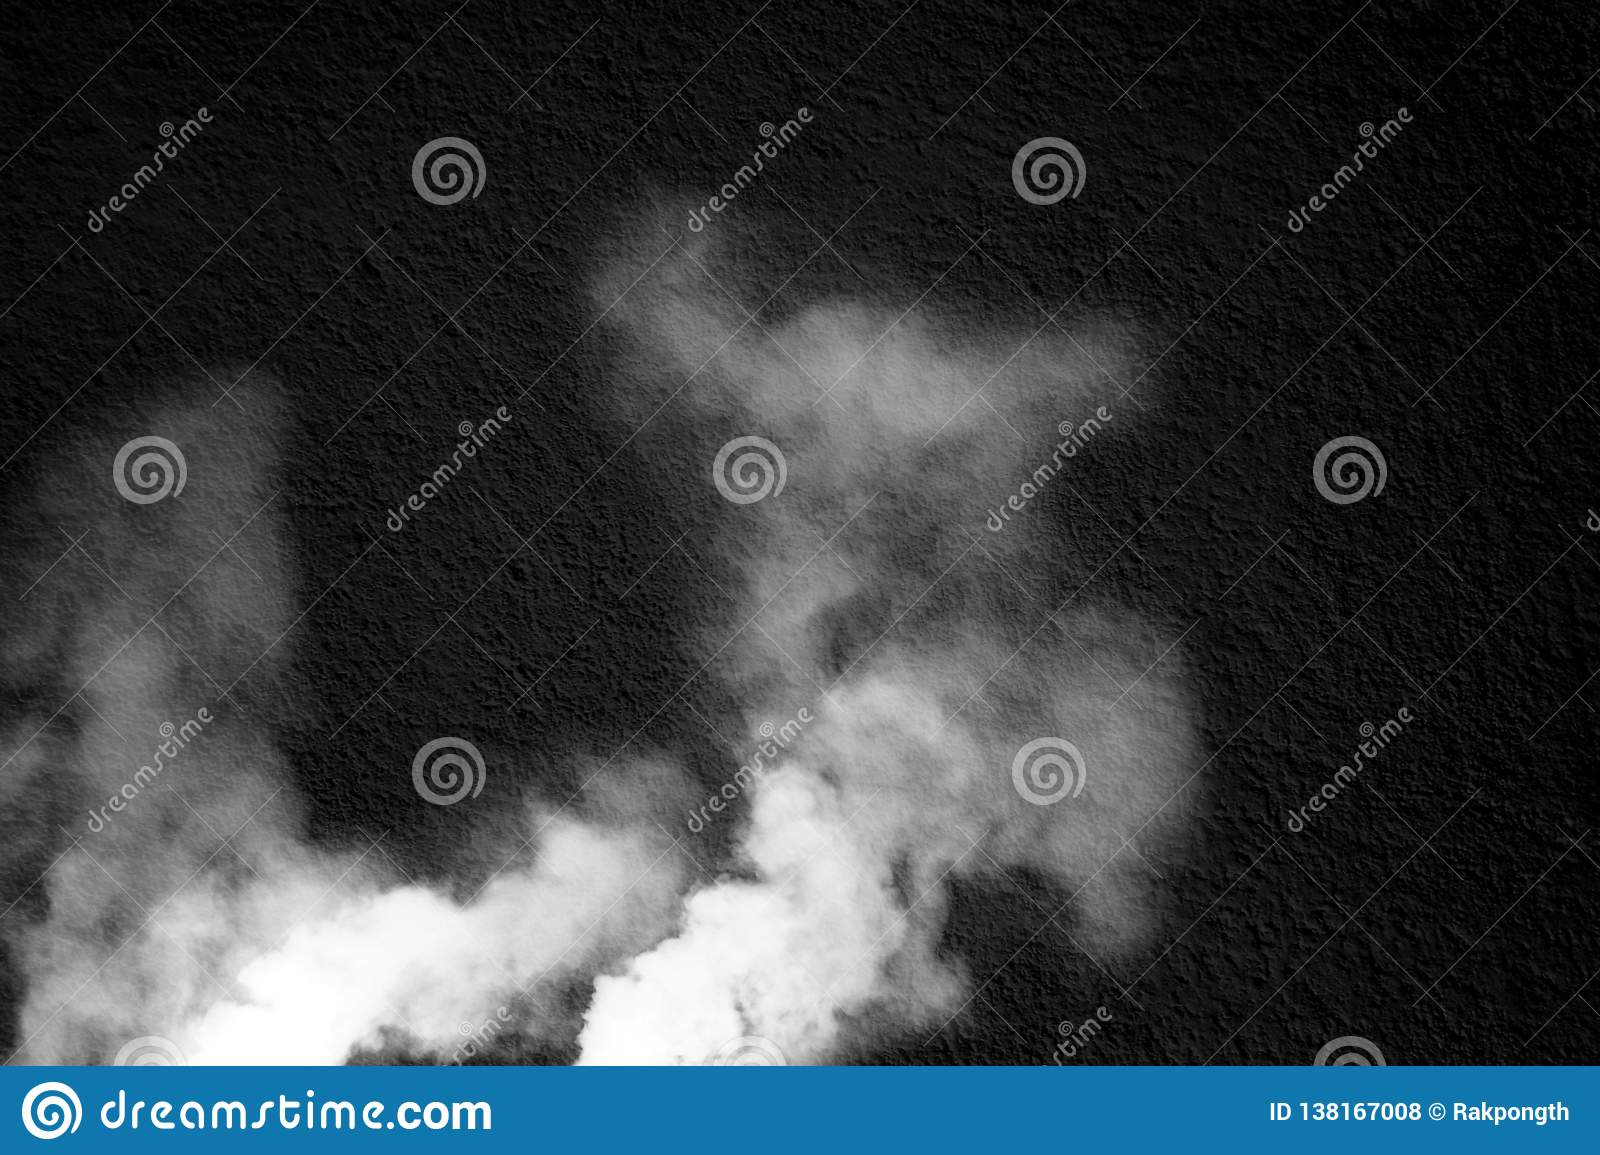 Smoke Black Mortar Cement Abstract Background Texture